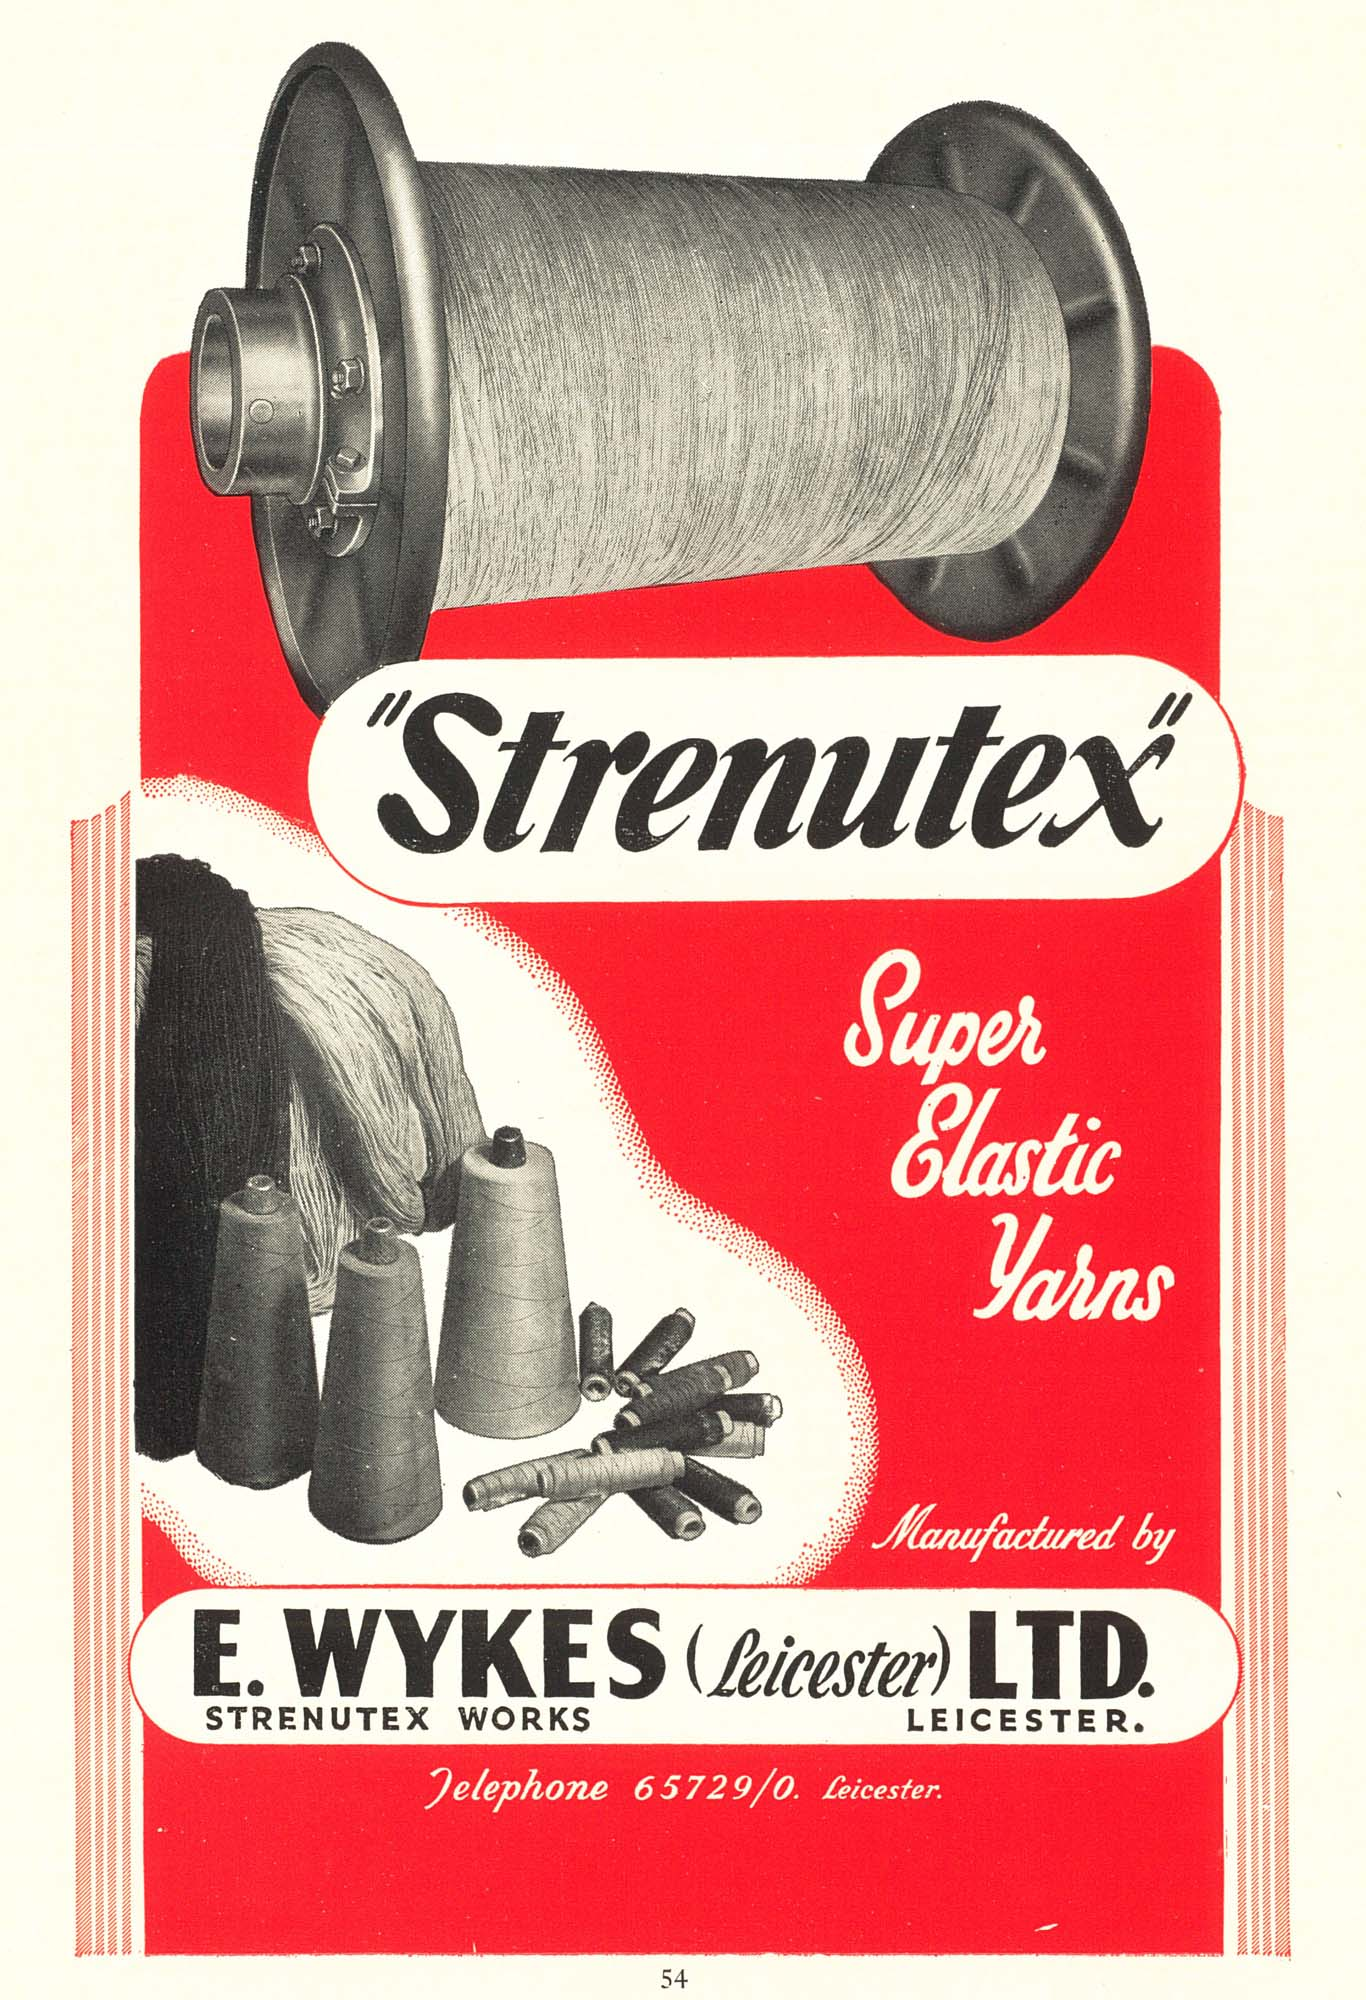 An advert for Strenutex brand elastic yarn, made by E. Wykes Ltd. of Leicester - Leicester Official Handbook 1954